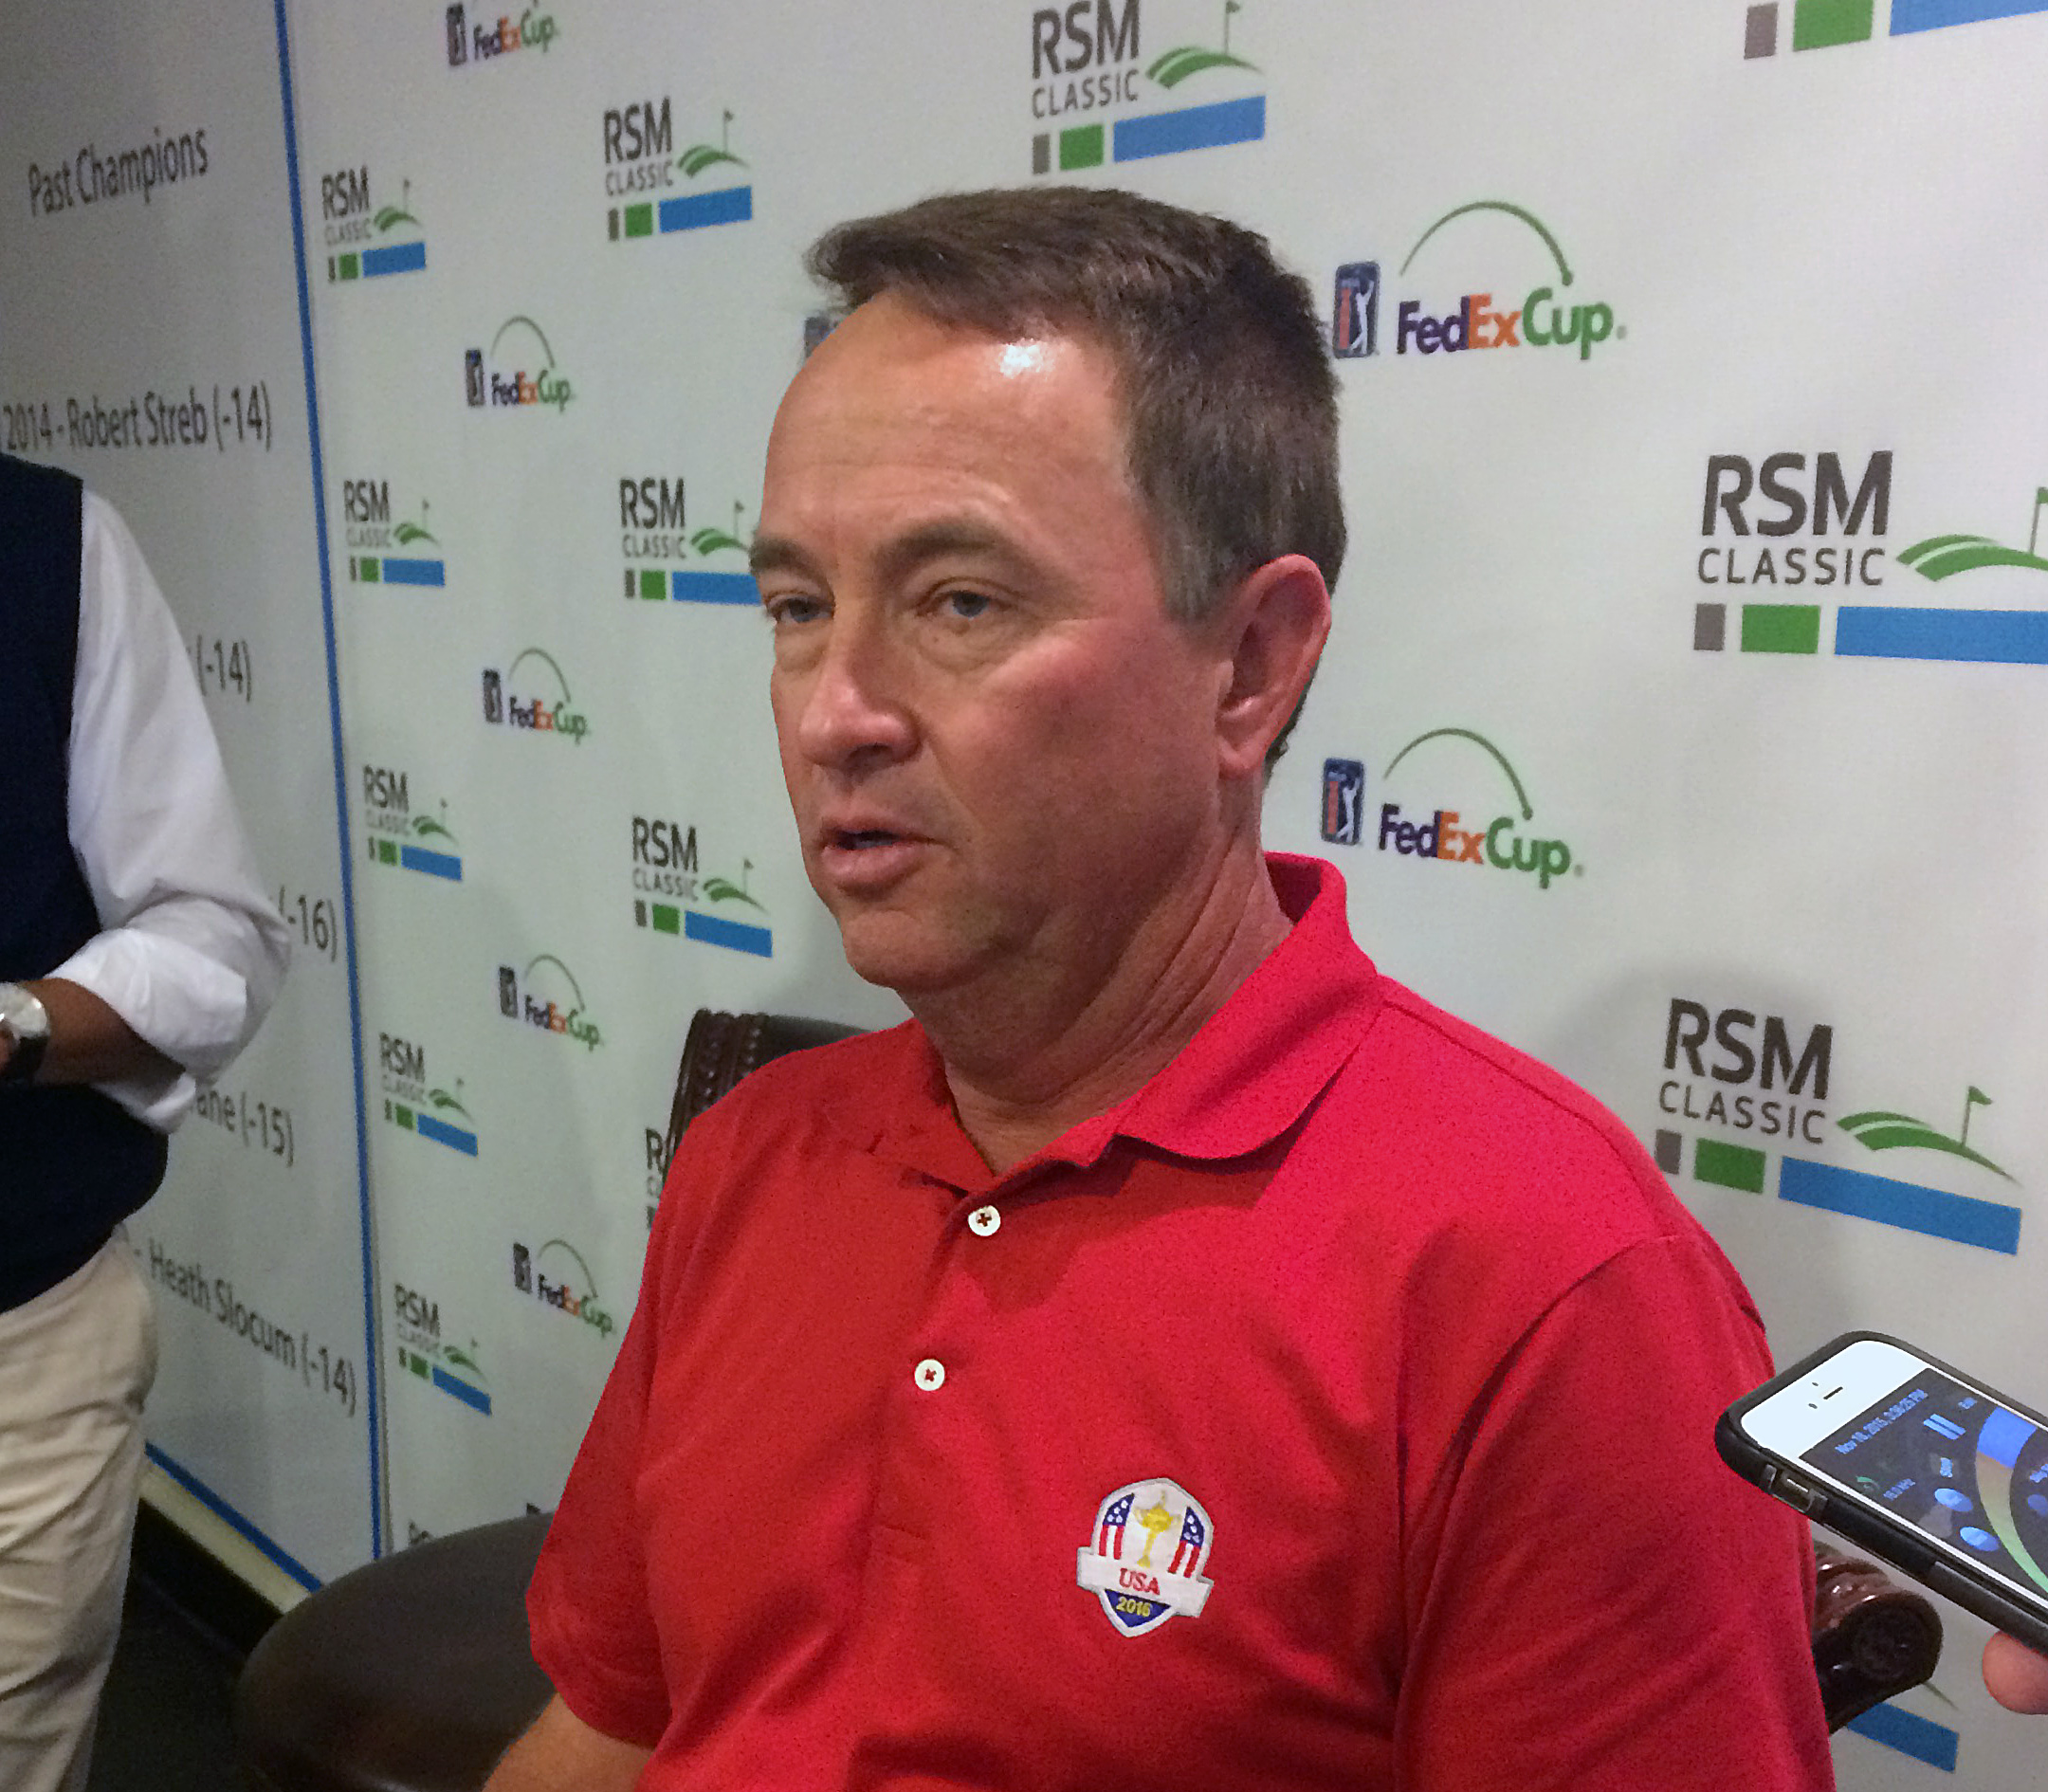 U.S. Davis Cup captian Davis love III talks to reporters at St. Simons Island, Ga., Wednesday, Nov. 18, 2015. Love said that Tiger Woods, Jim Furyk and Steve Stricker will be vice captains for the 2016 matches in Minnesota. (AP Photo/Doug Ferguson)